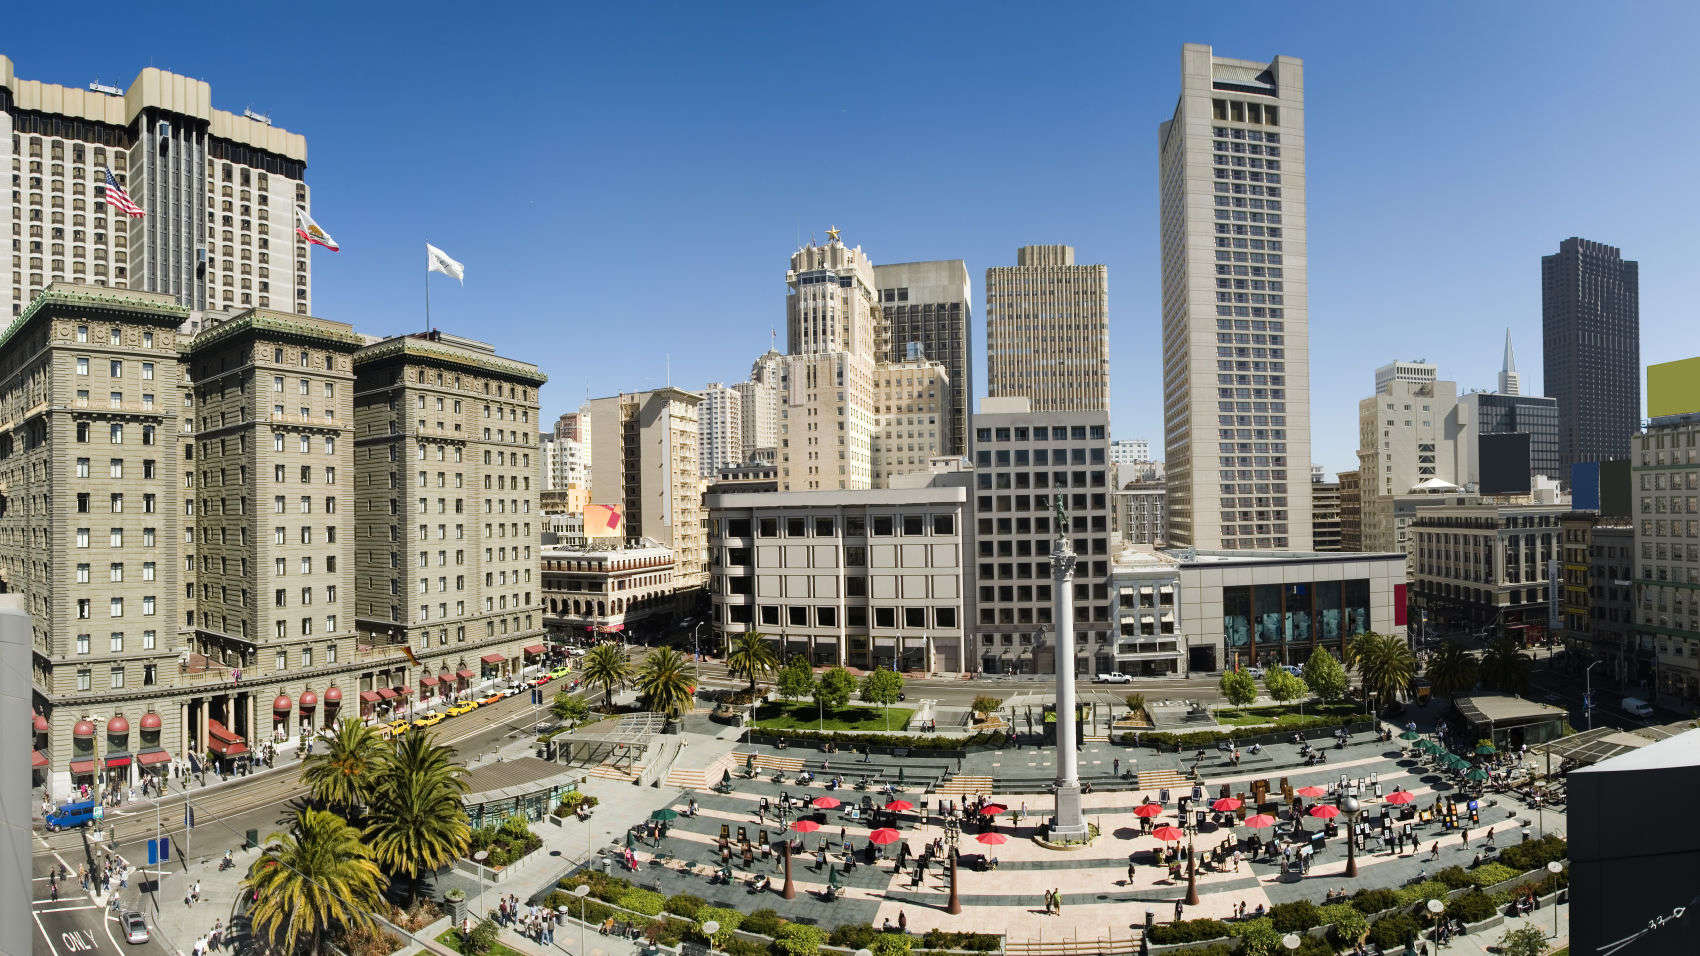 Hotel Union Square San Francisco Top 10 Hotels In Union Square San Francisco Ca Hotels